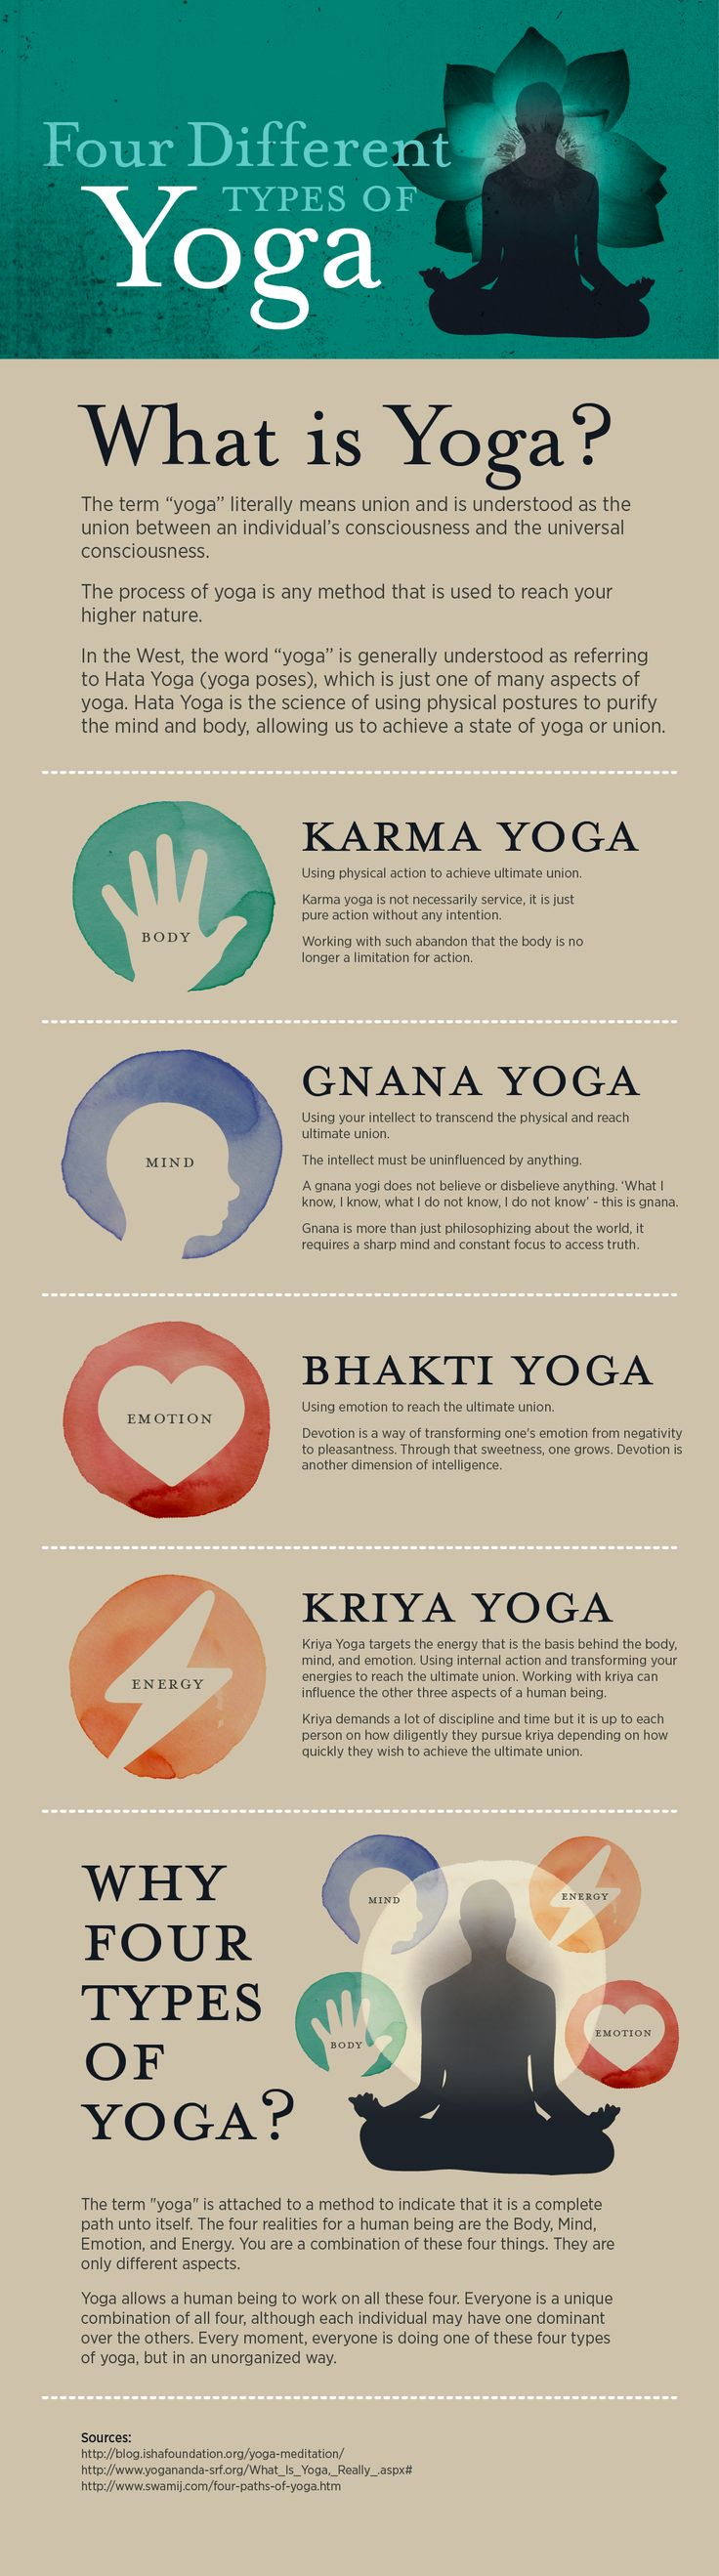 yoga_info graphic isha3-01